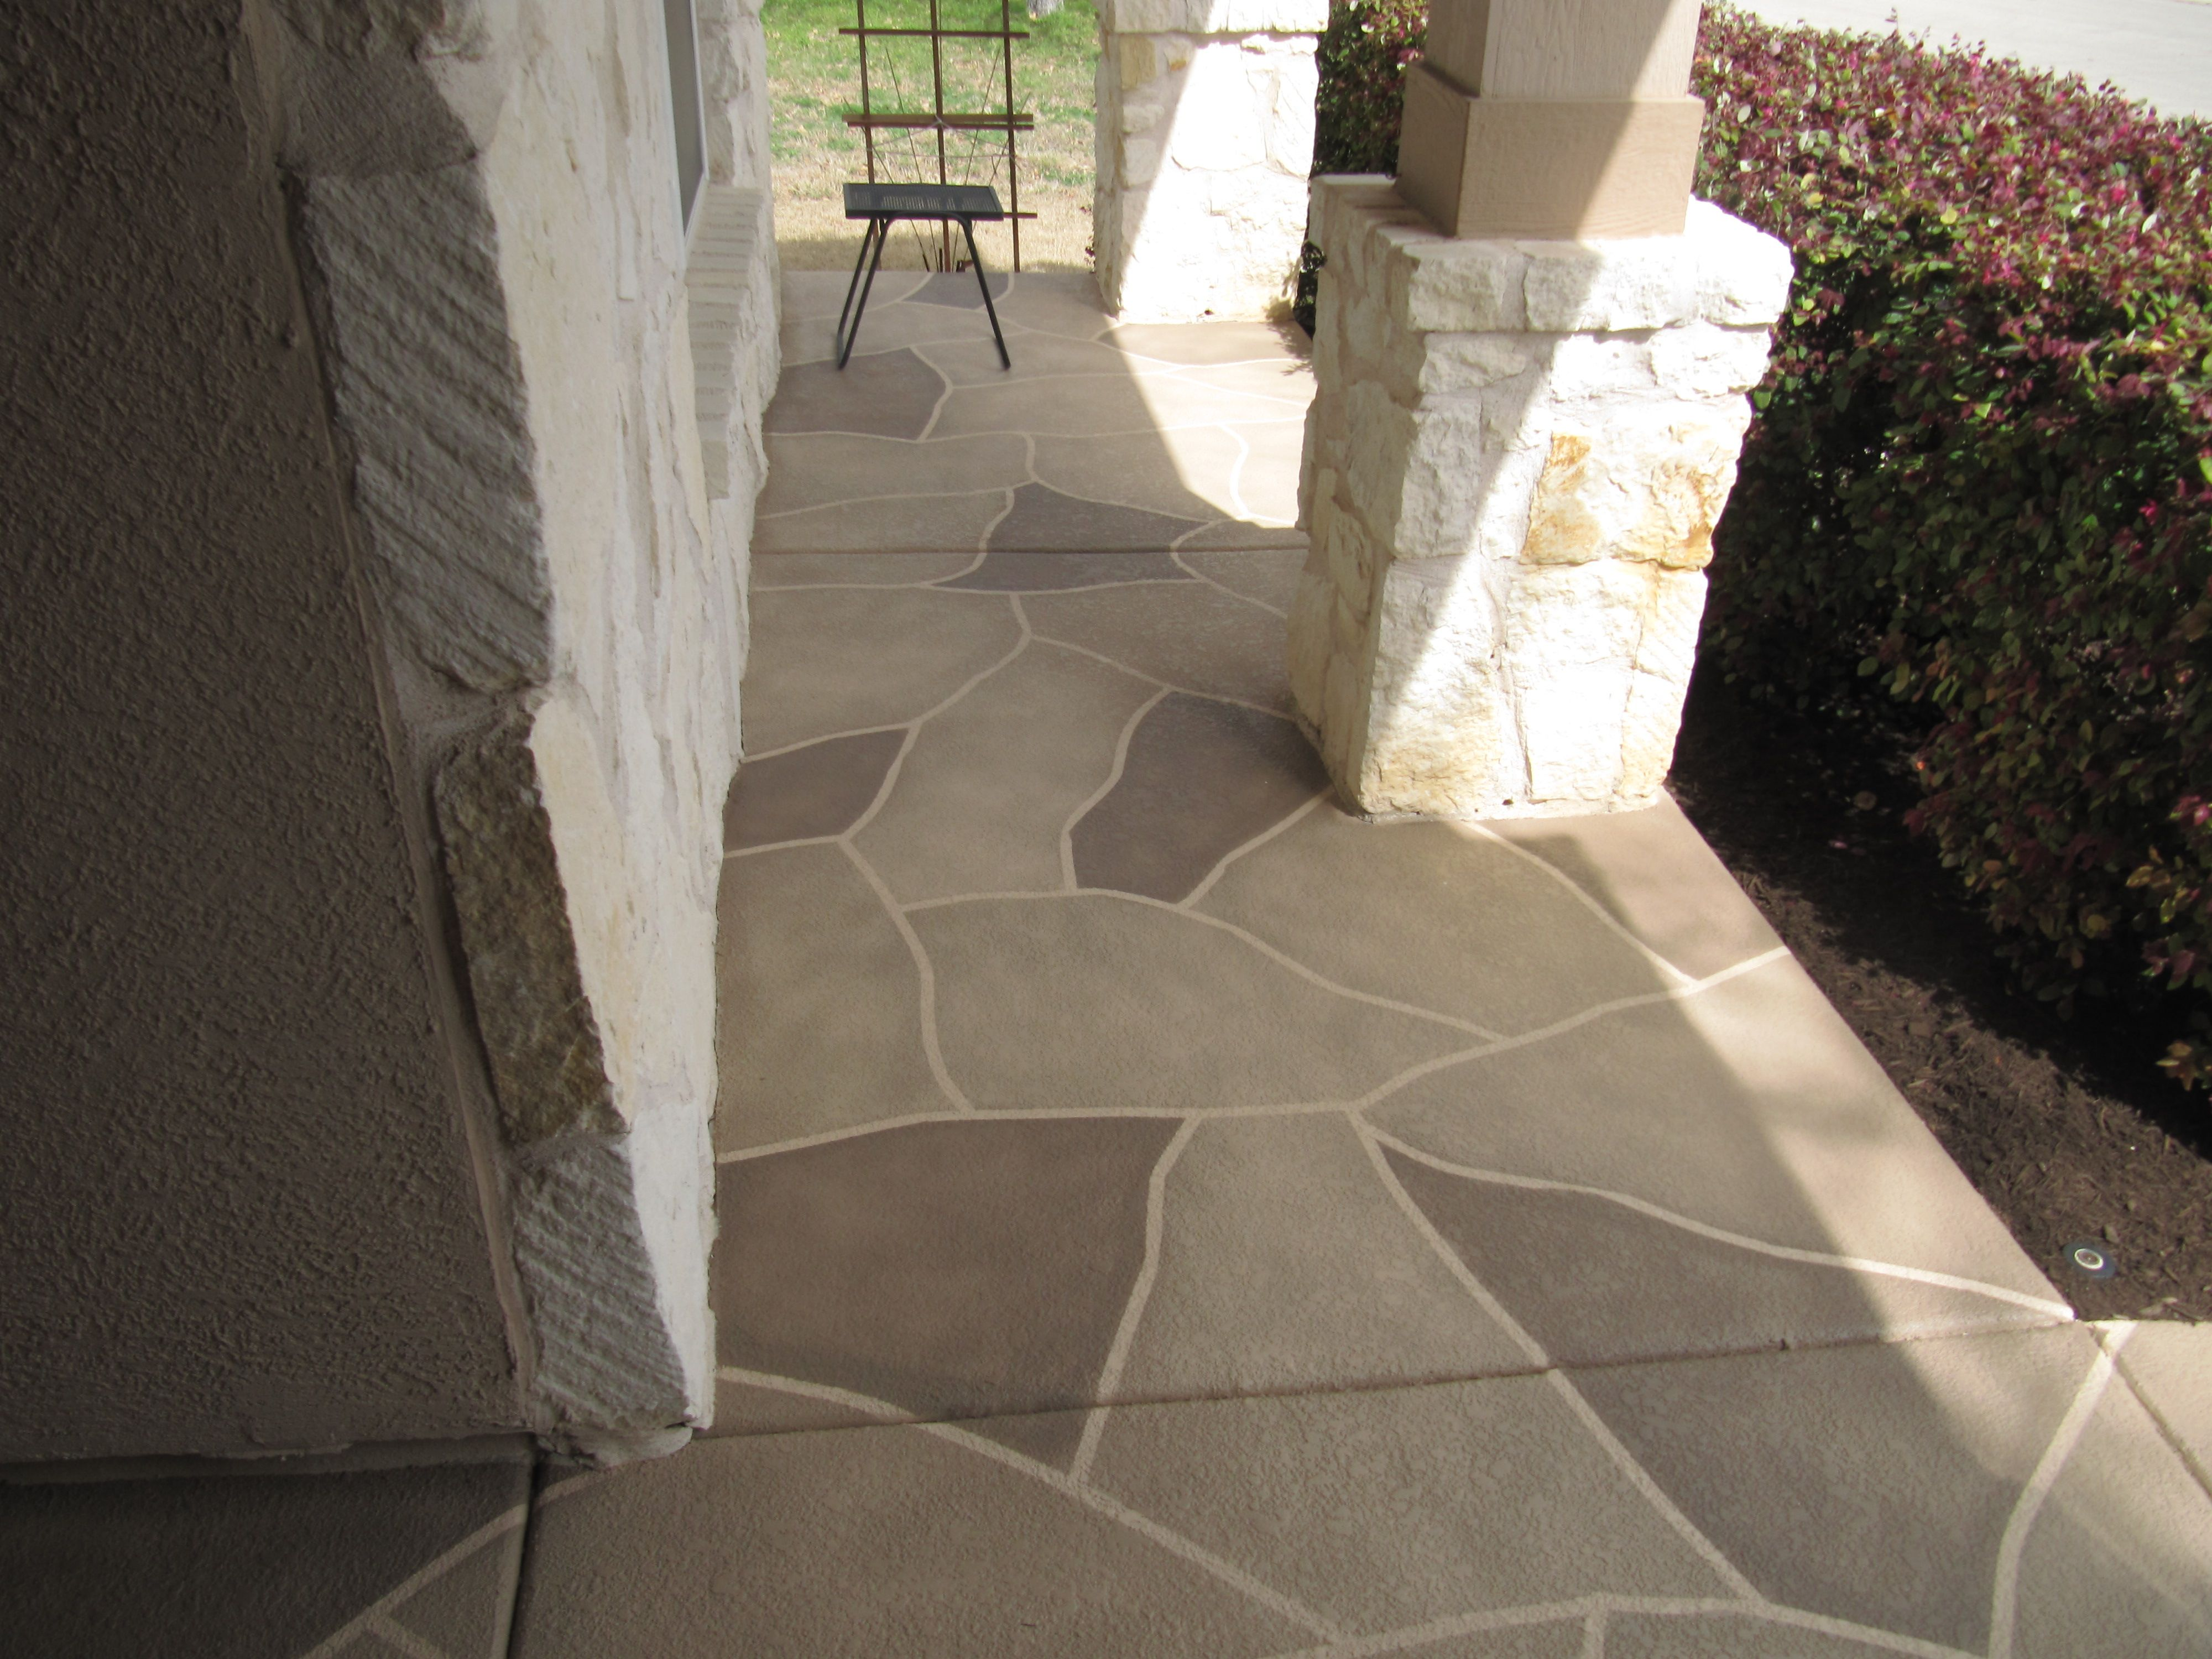 Painted Patio Stone Pattern Lasts A Lifetime And Is Stain Resistant Modern Concrete Creations So Pre Painted Patio Paint Concrete Patio Painting Concrete